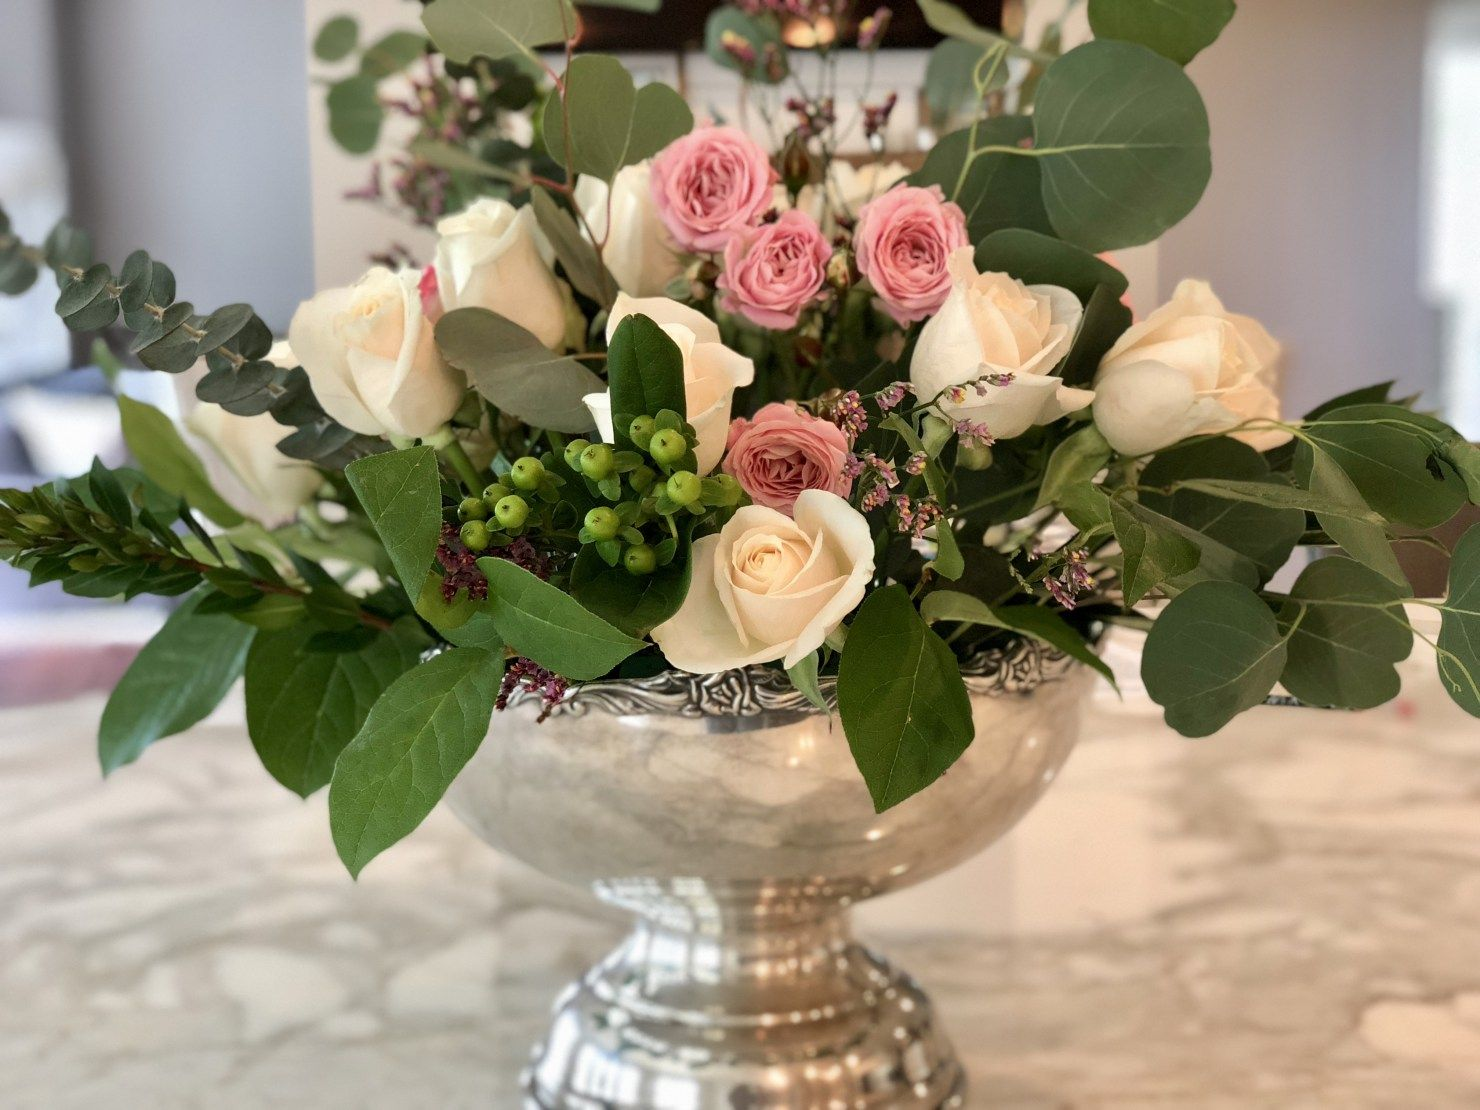 How To Make A Rose And Eucalyptus Floral Arrangement Step By Step